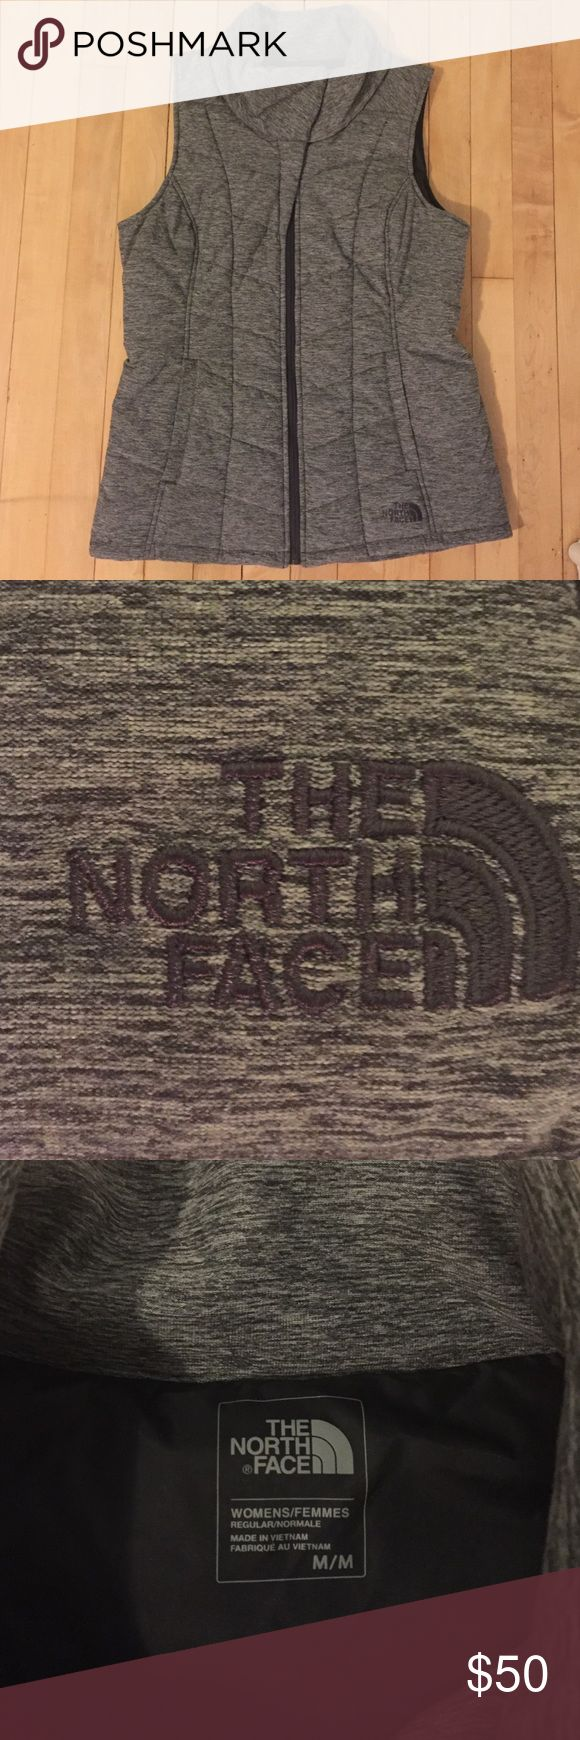 Gray North Face vest This adorable North Face vest is an adorable steal, so feel free to make an offer! The North Face Jackets & Coats Vests